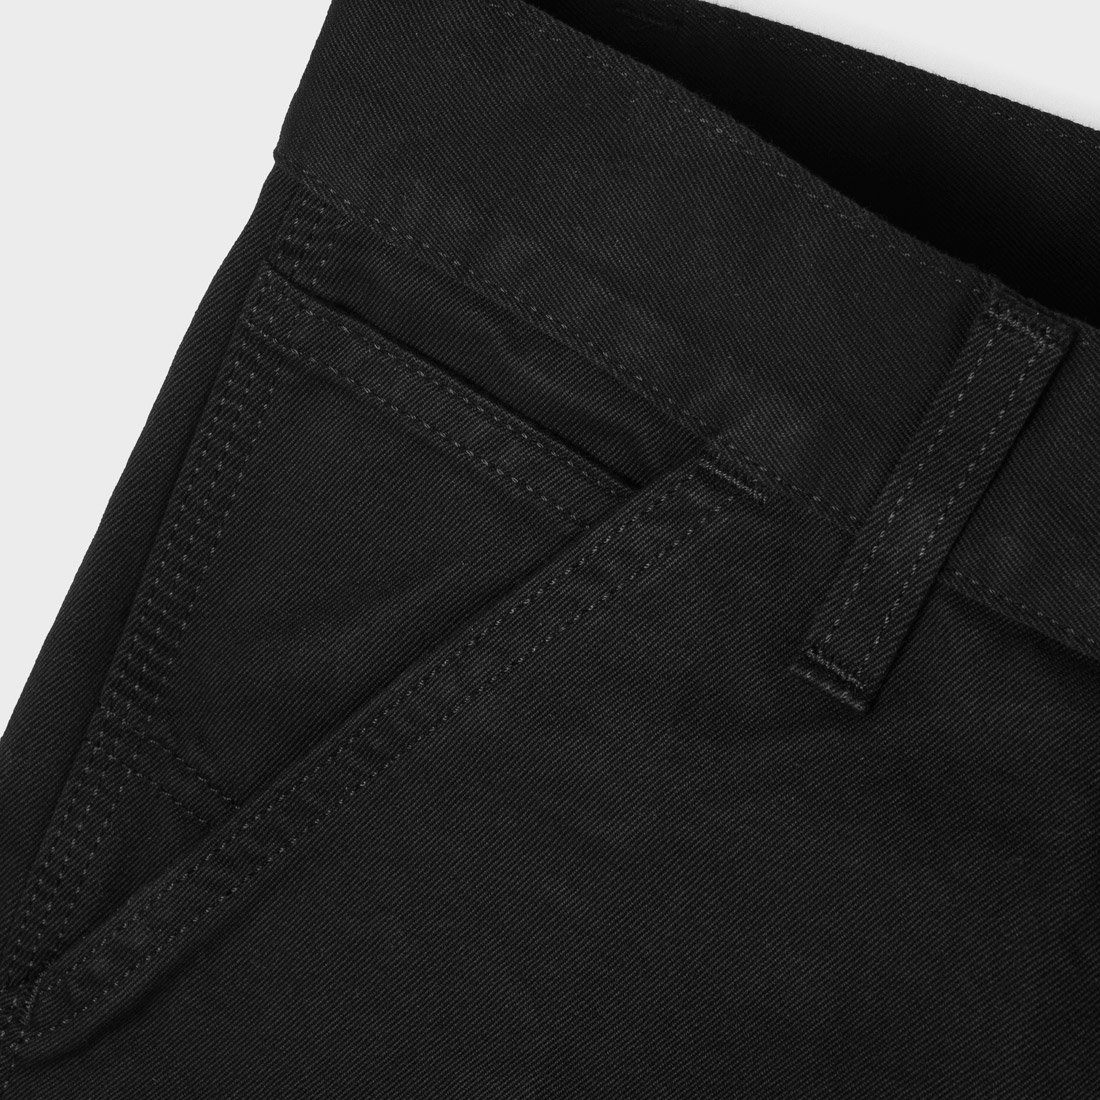 b8cdea48 ... product: Carhartt WIP Ruck Single Knee Pant Black Stone Washed